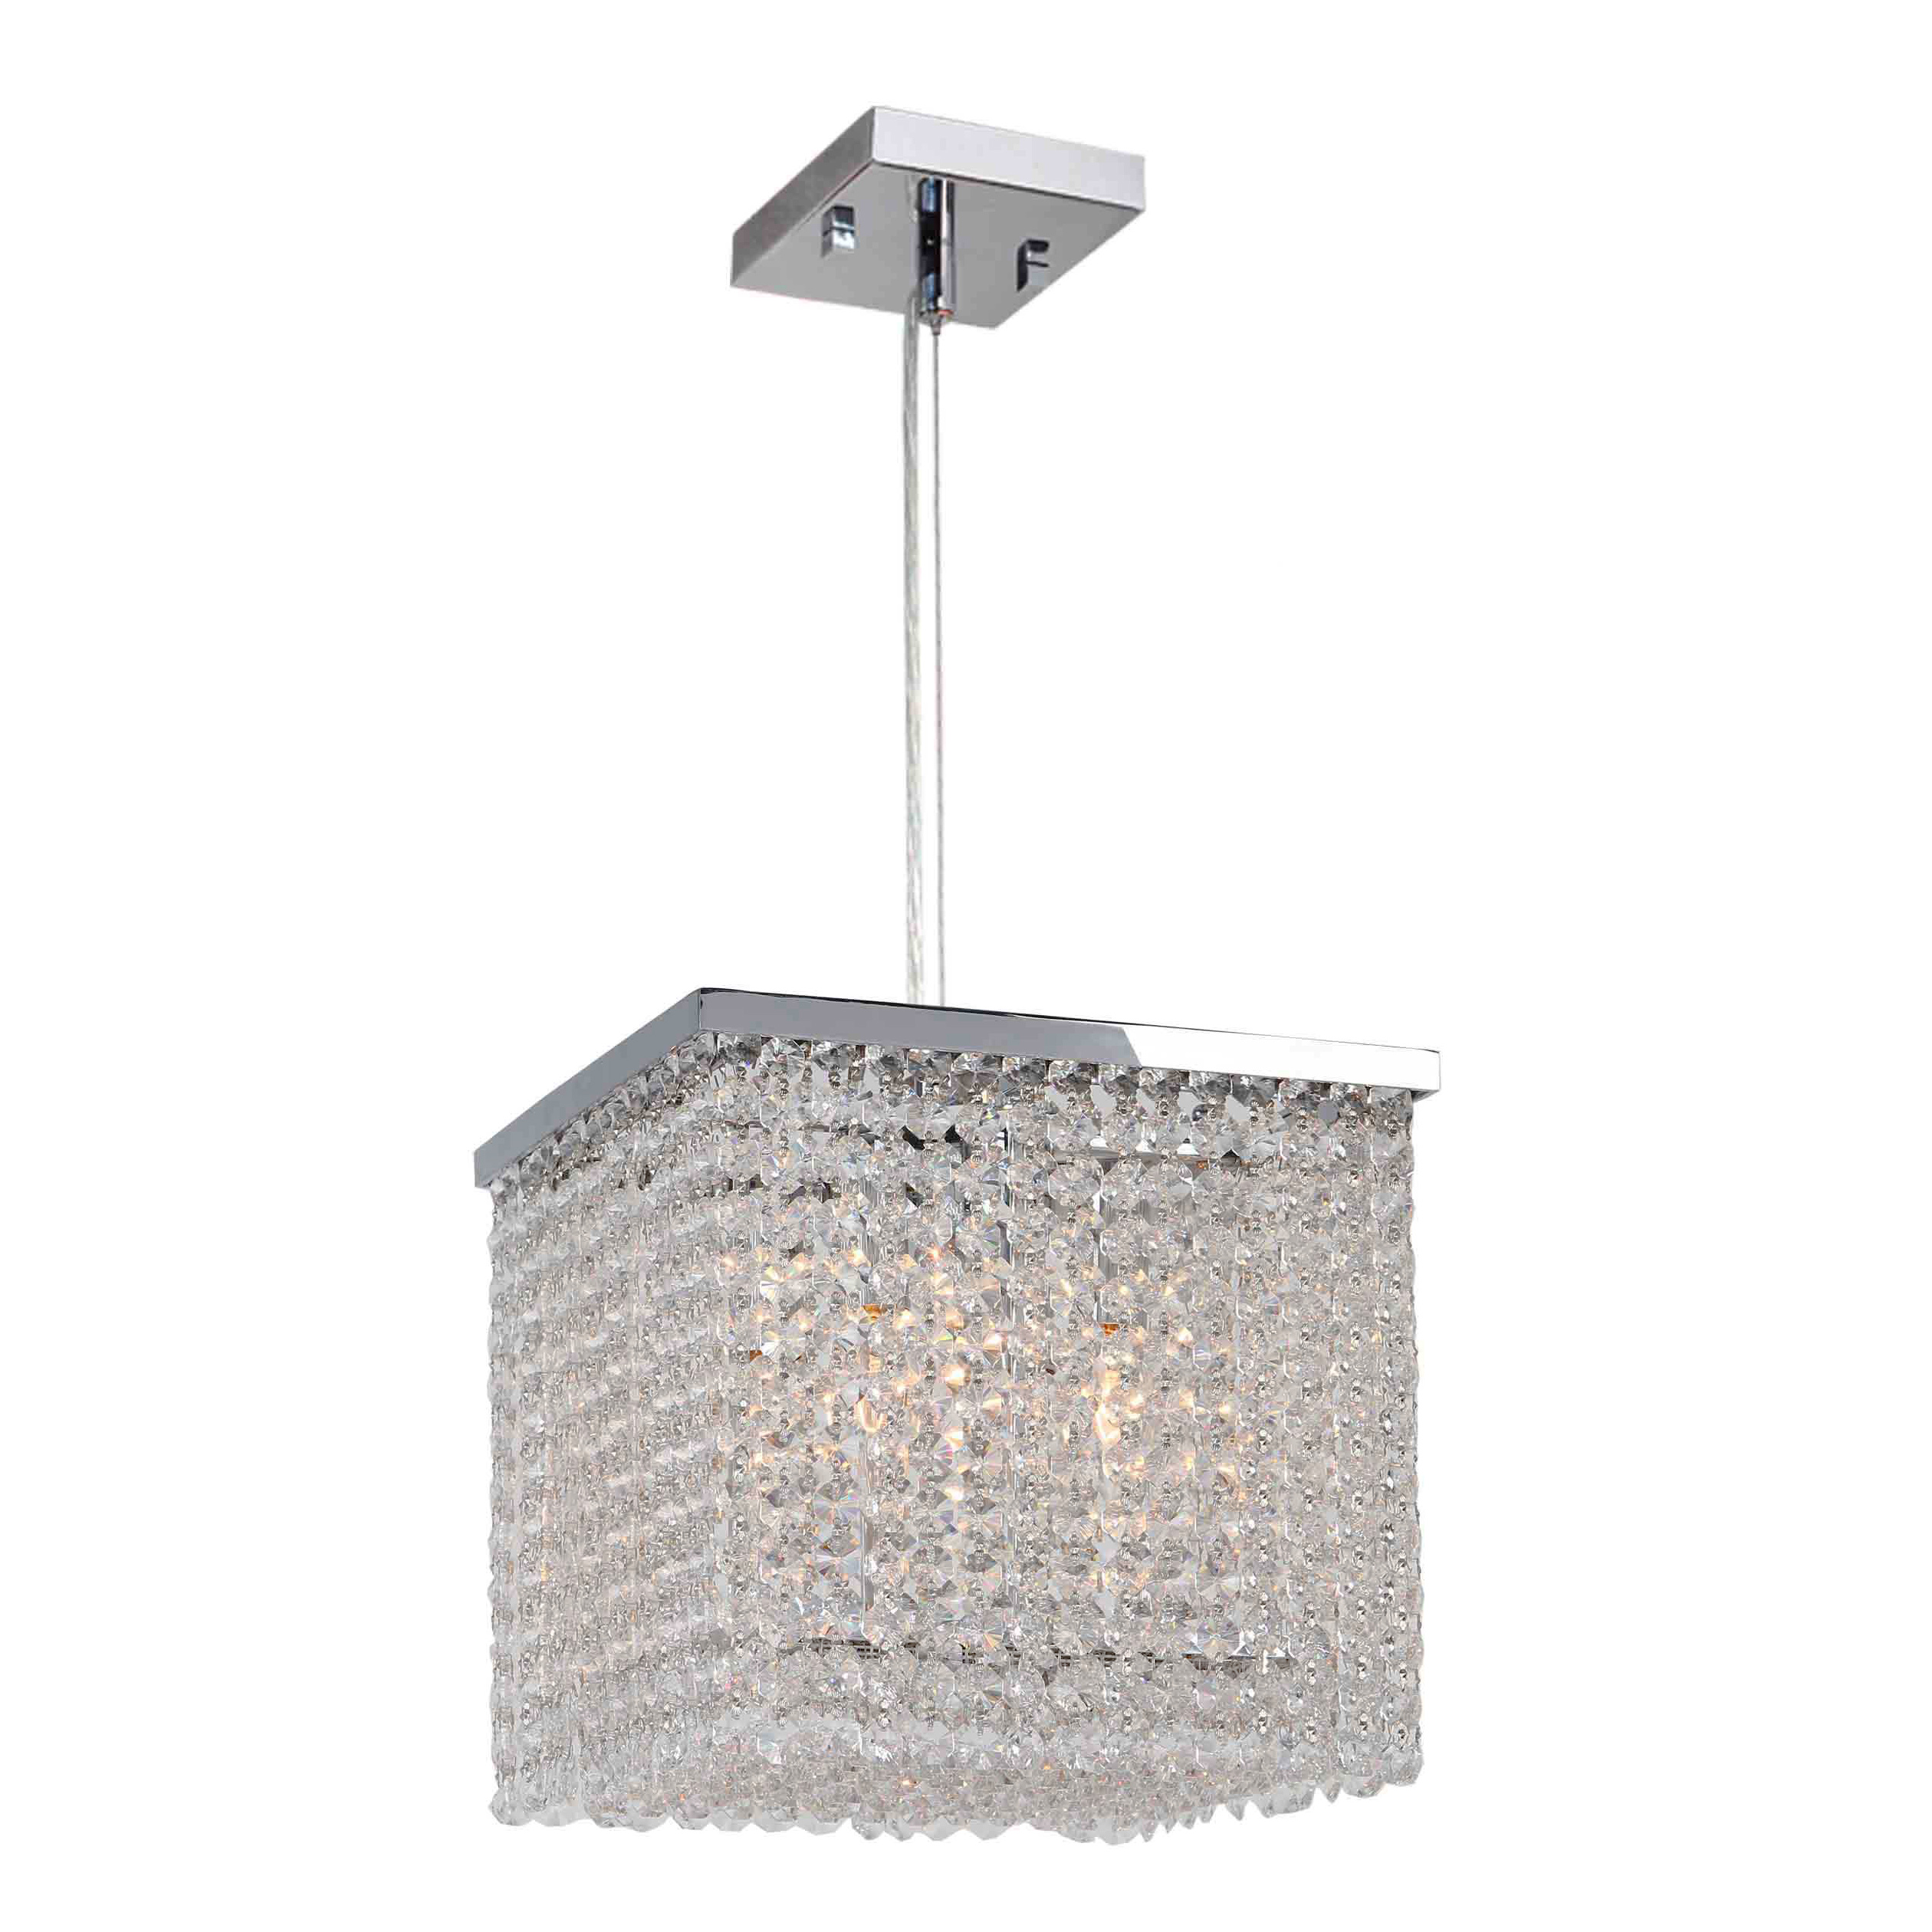 Worldwide Lighting W83726C10 Prism 4 Light Chrome Finish with Clear Crystal Pendant